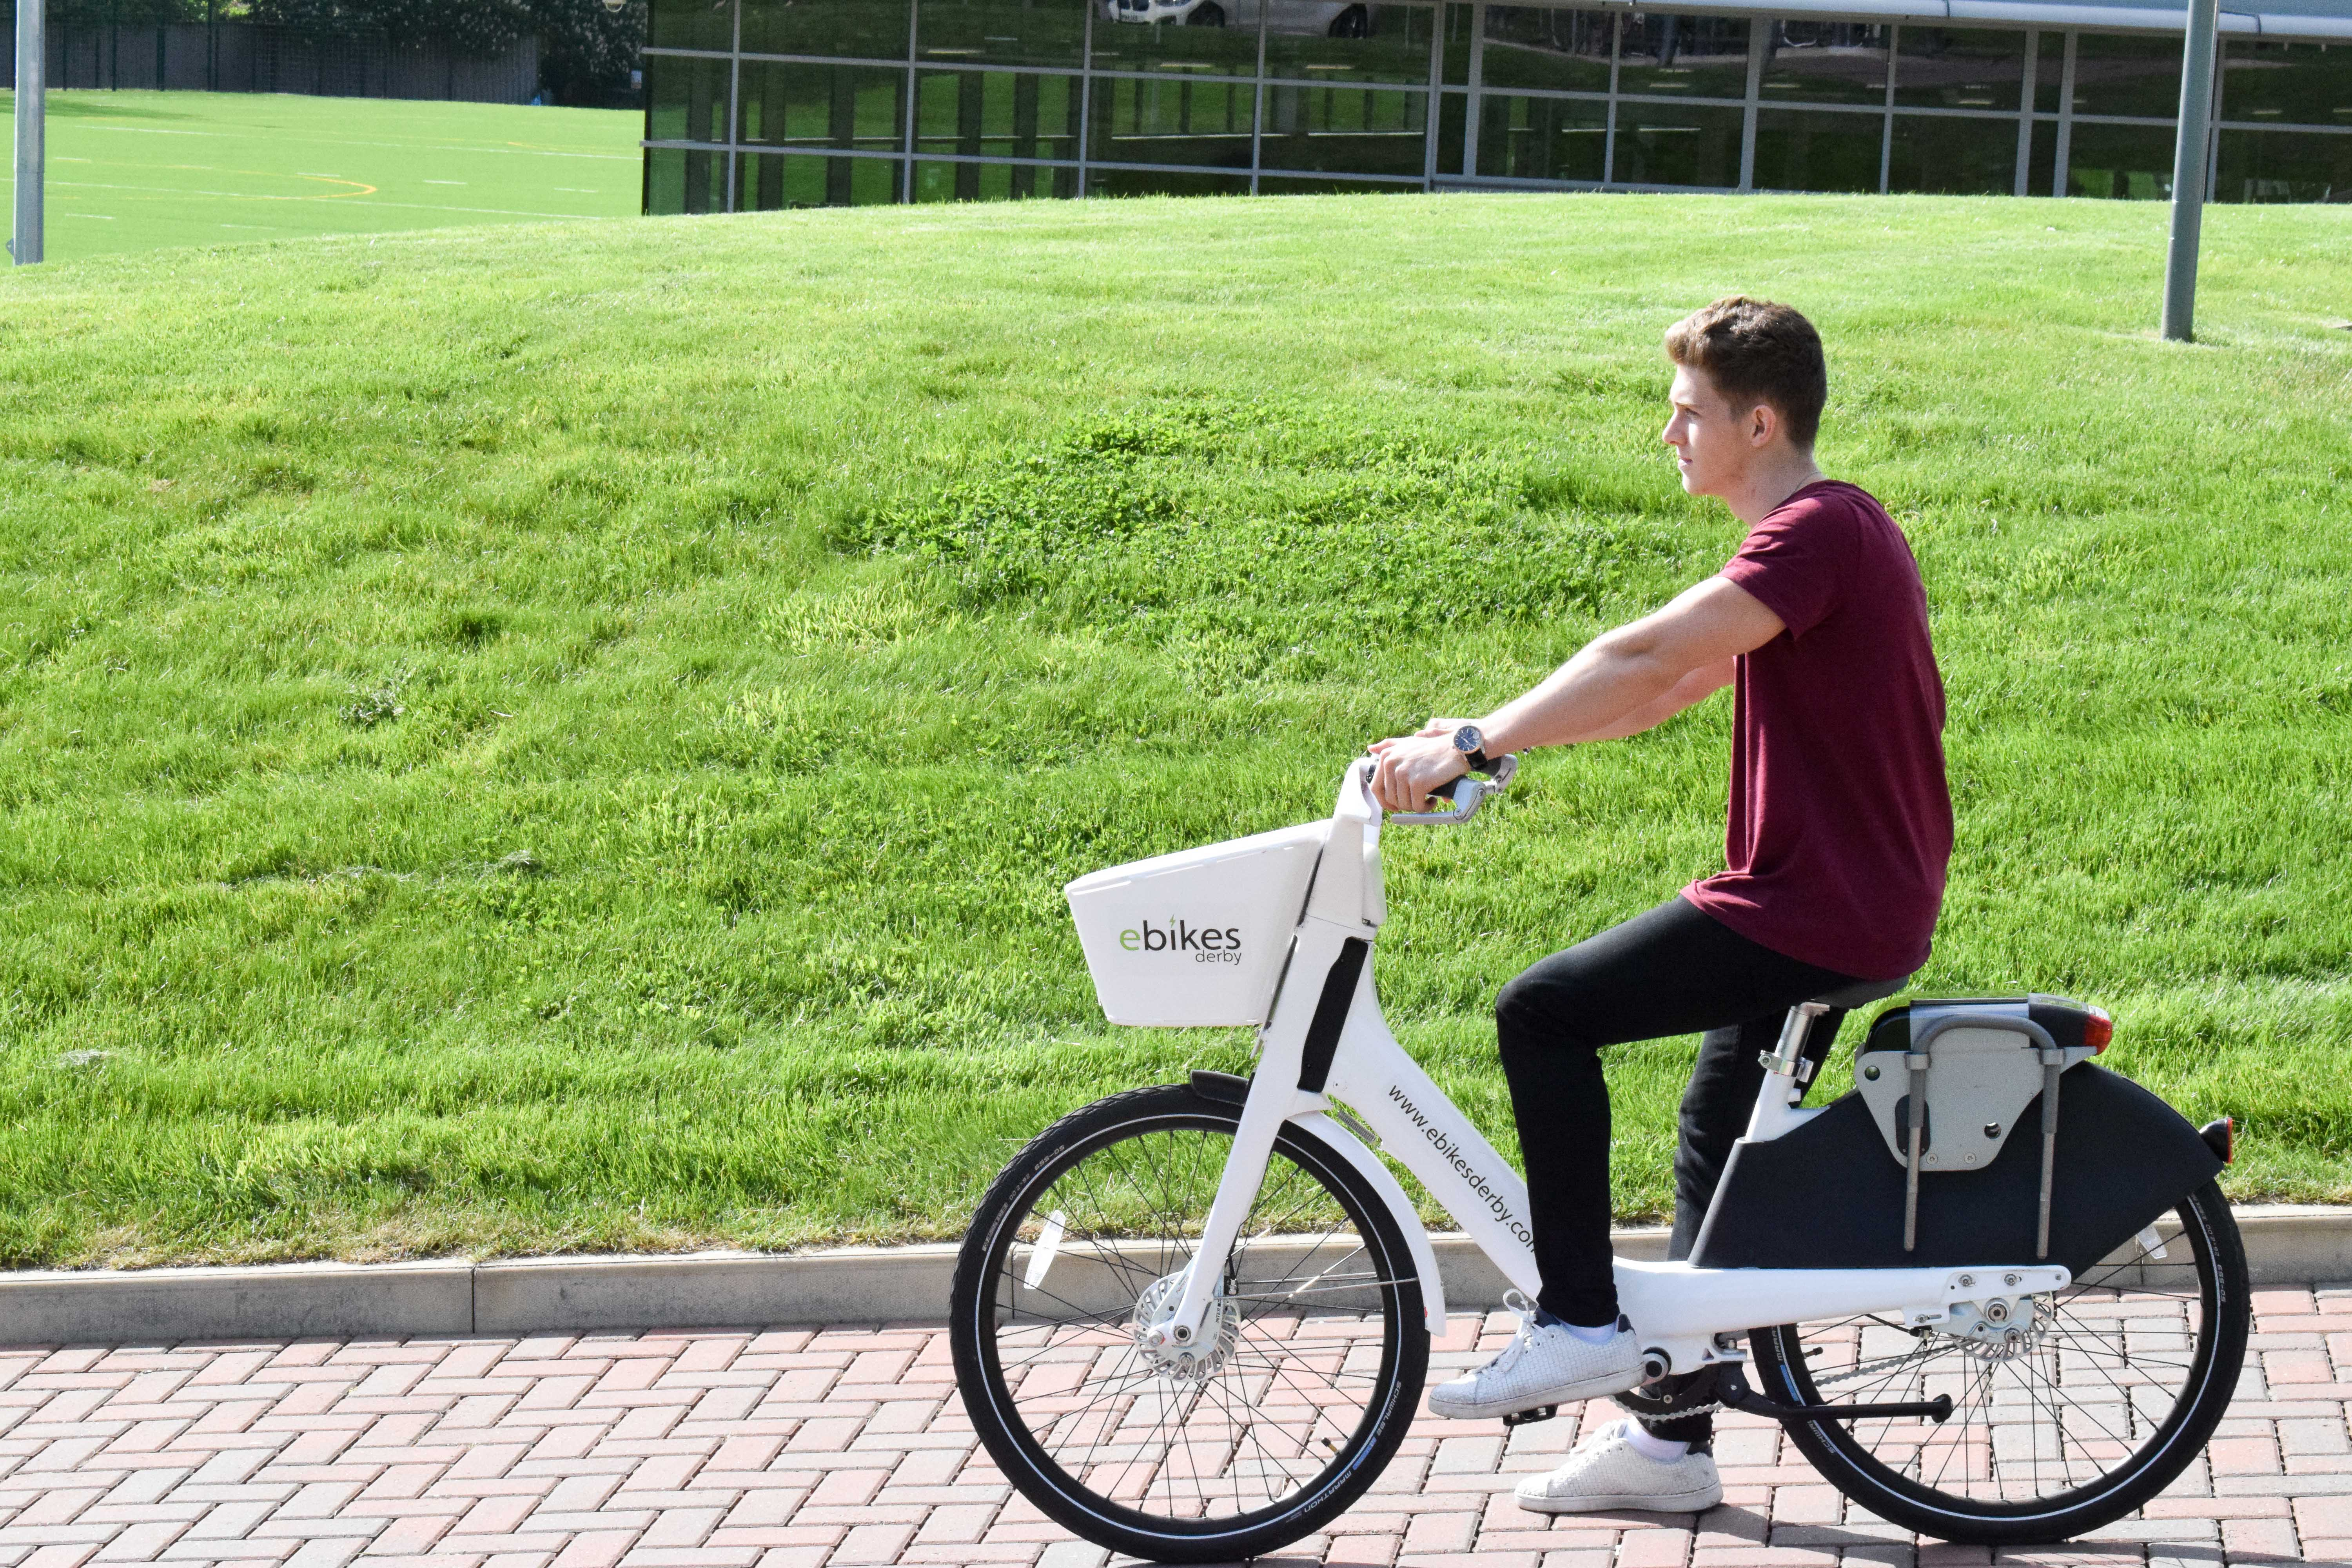 A student leaving Kedleston Road on an electric ebike